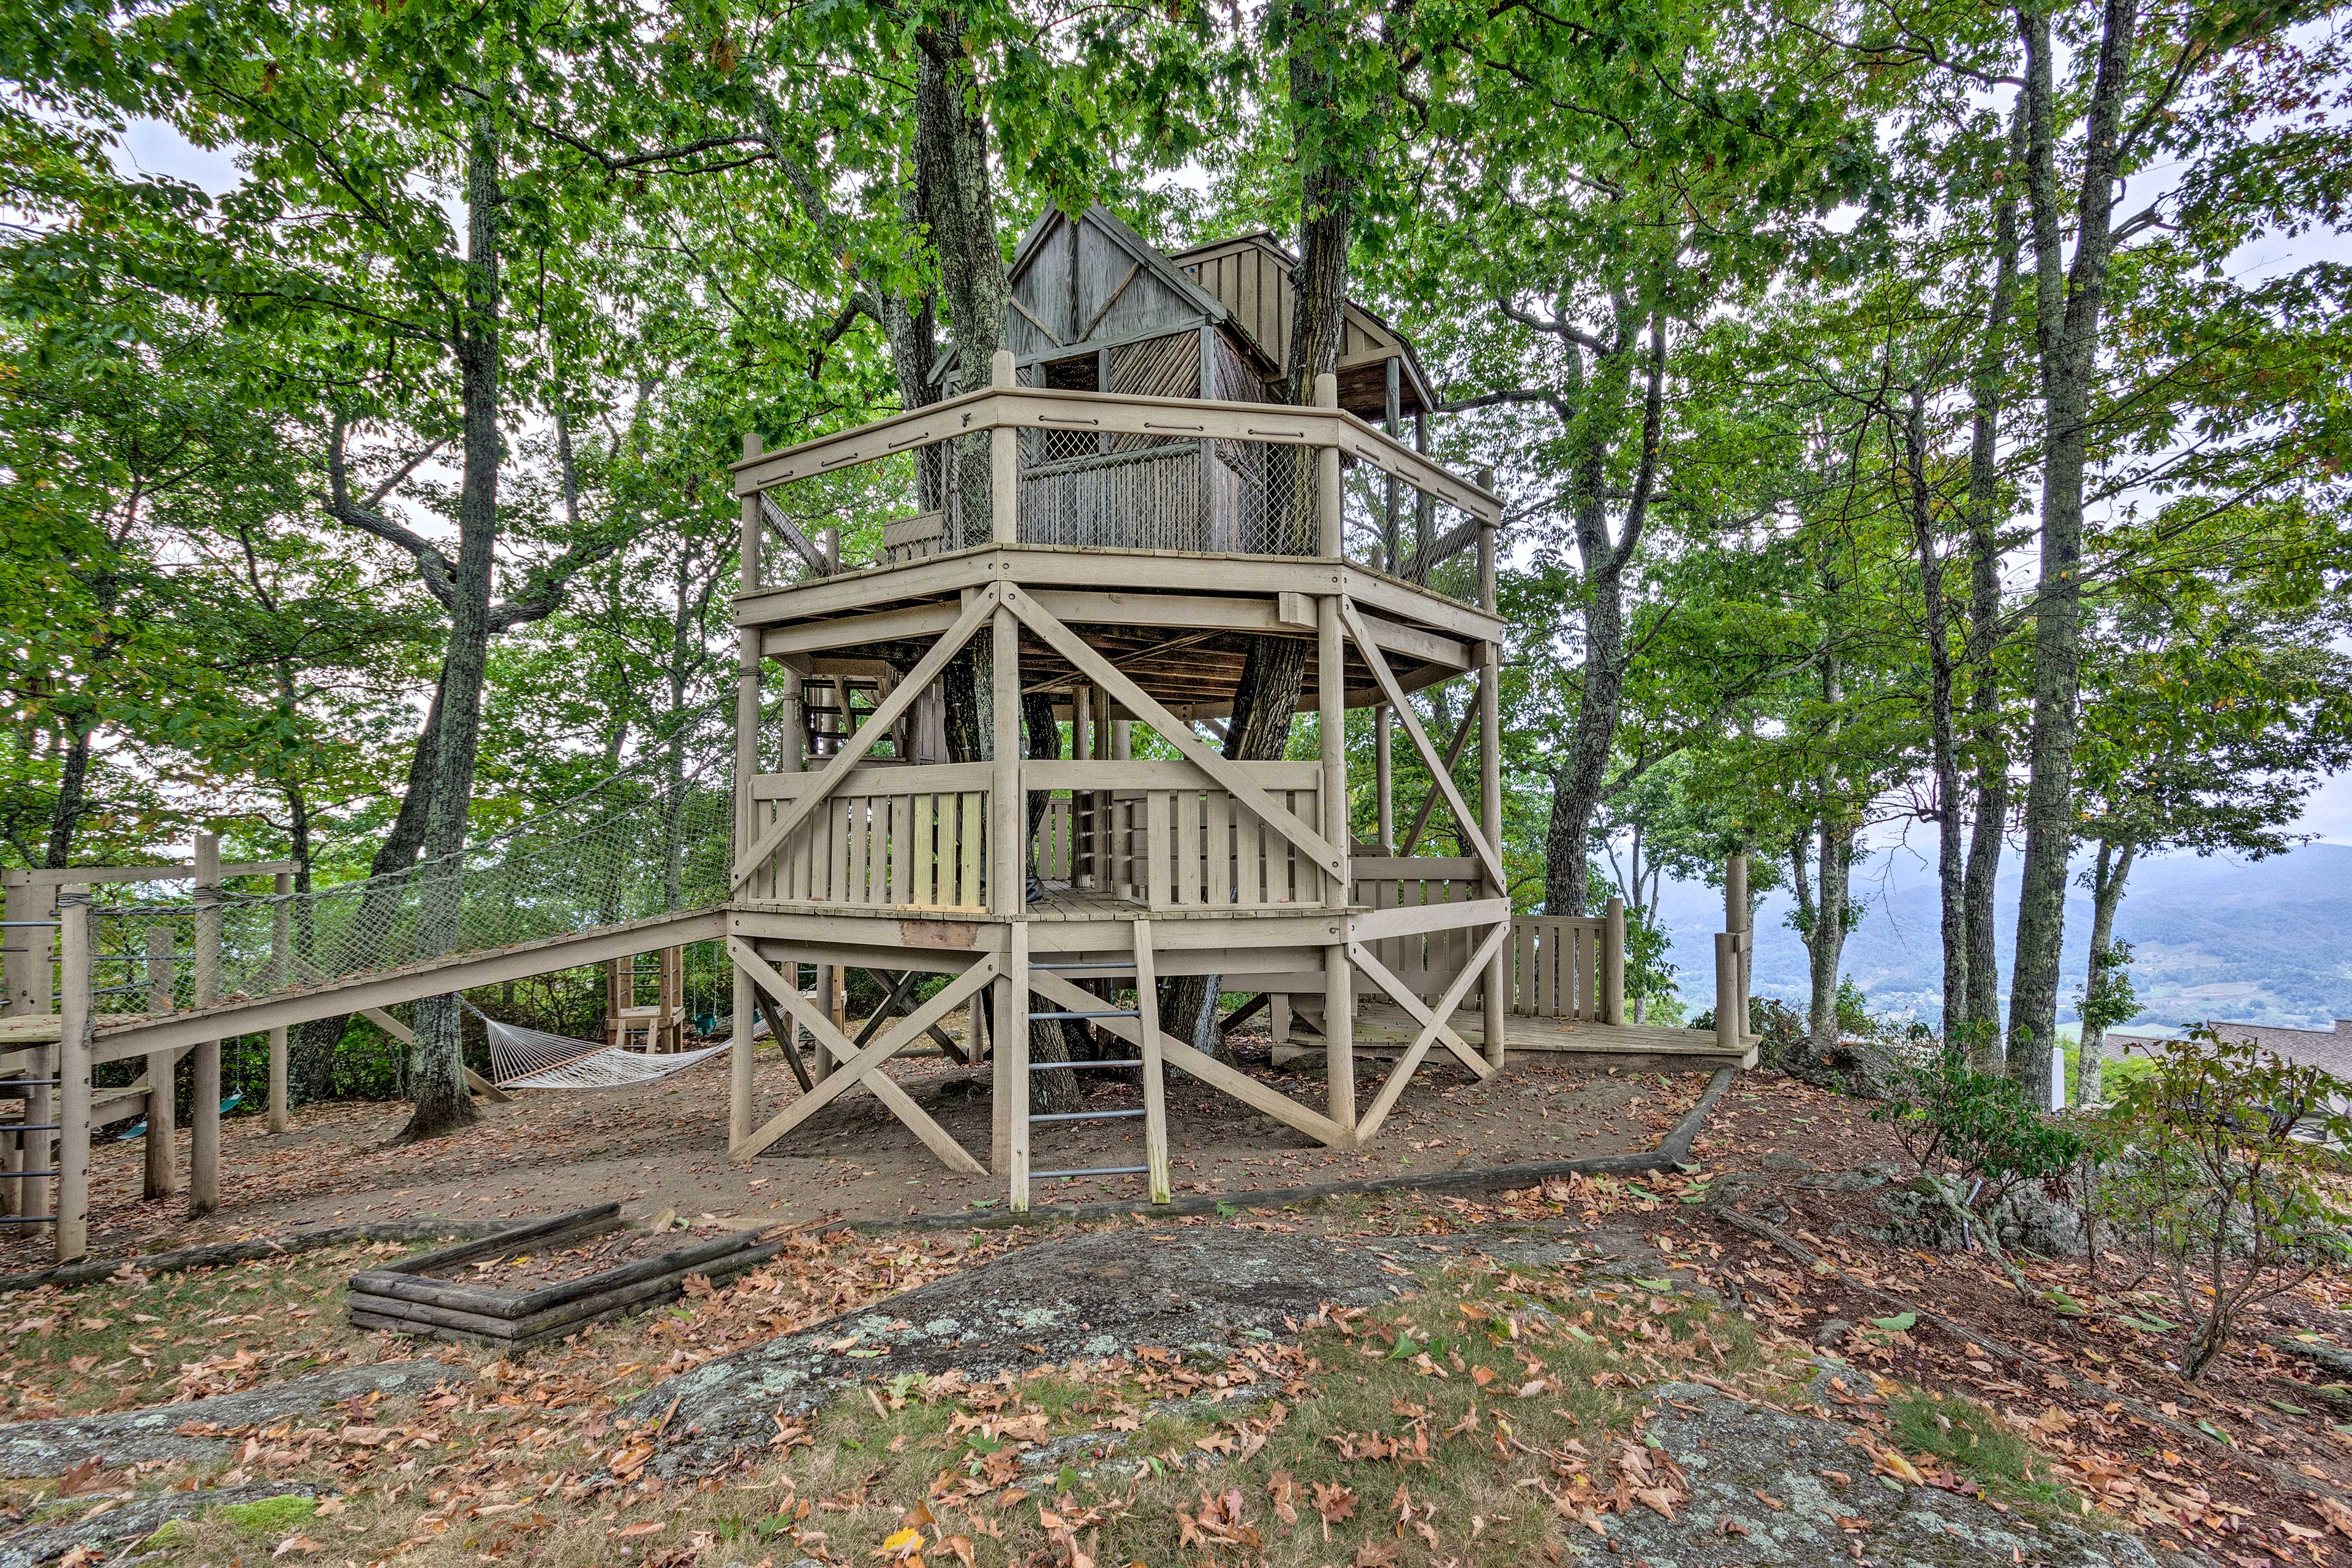 Book this Burnsville condo now for an unmatched getaway in the Smokies!